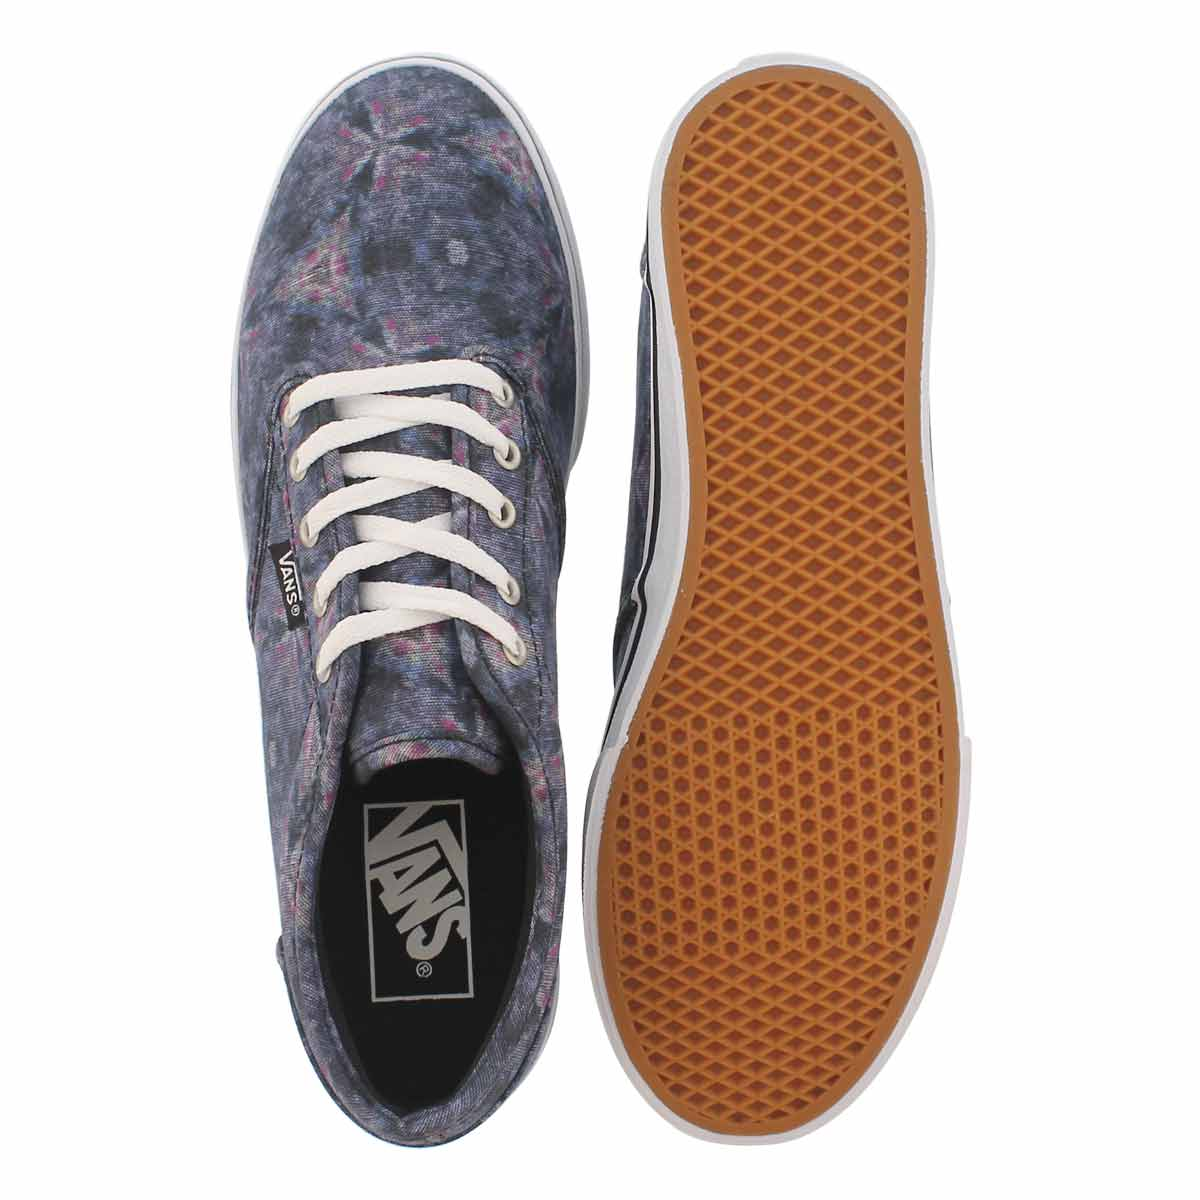 Lds Atwood Low galaxy multi laceup snkr